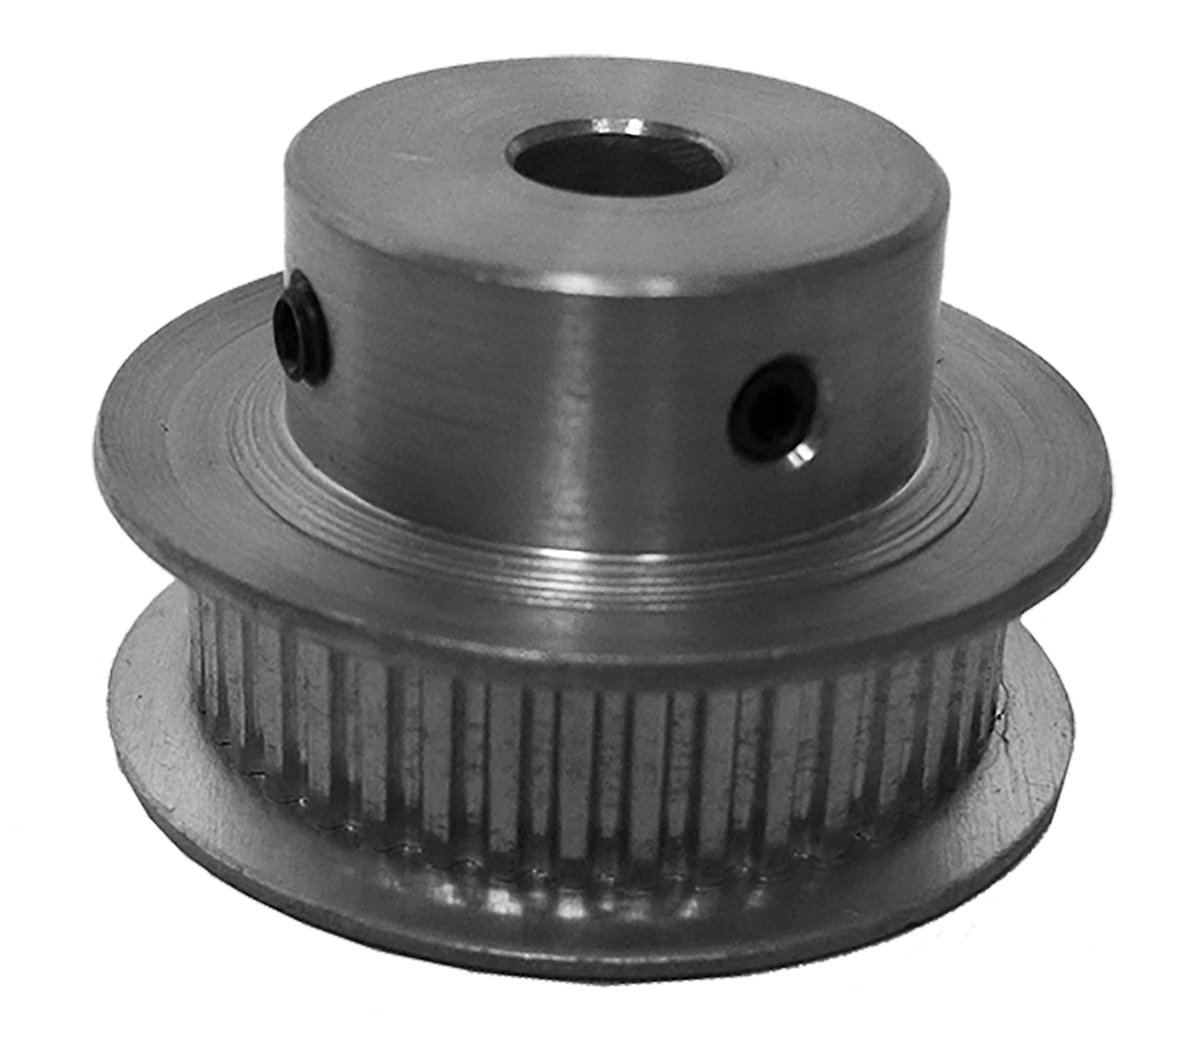 44MP025-6FA3 - Aluminum Imperial Pitch Pulleys